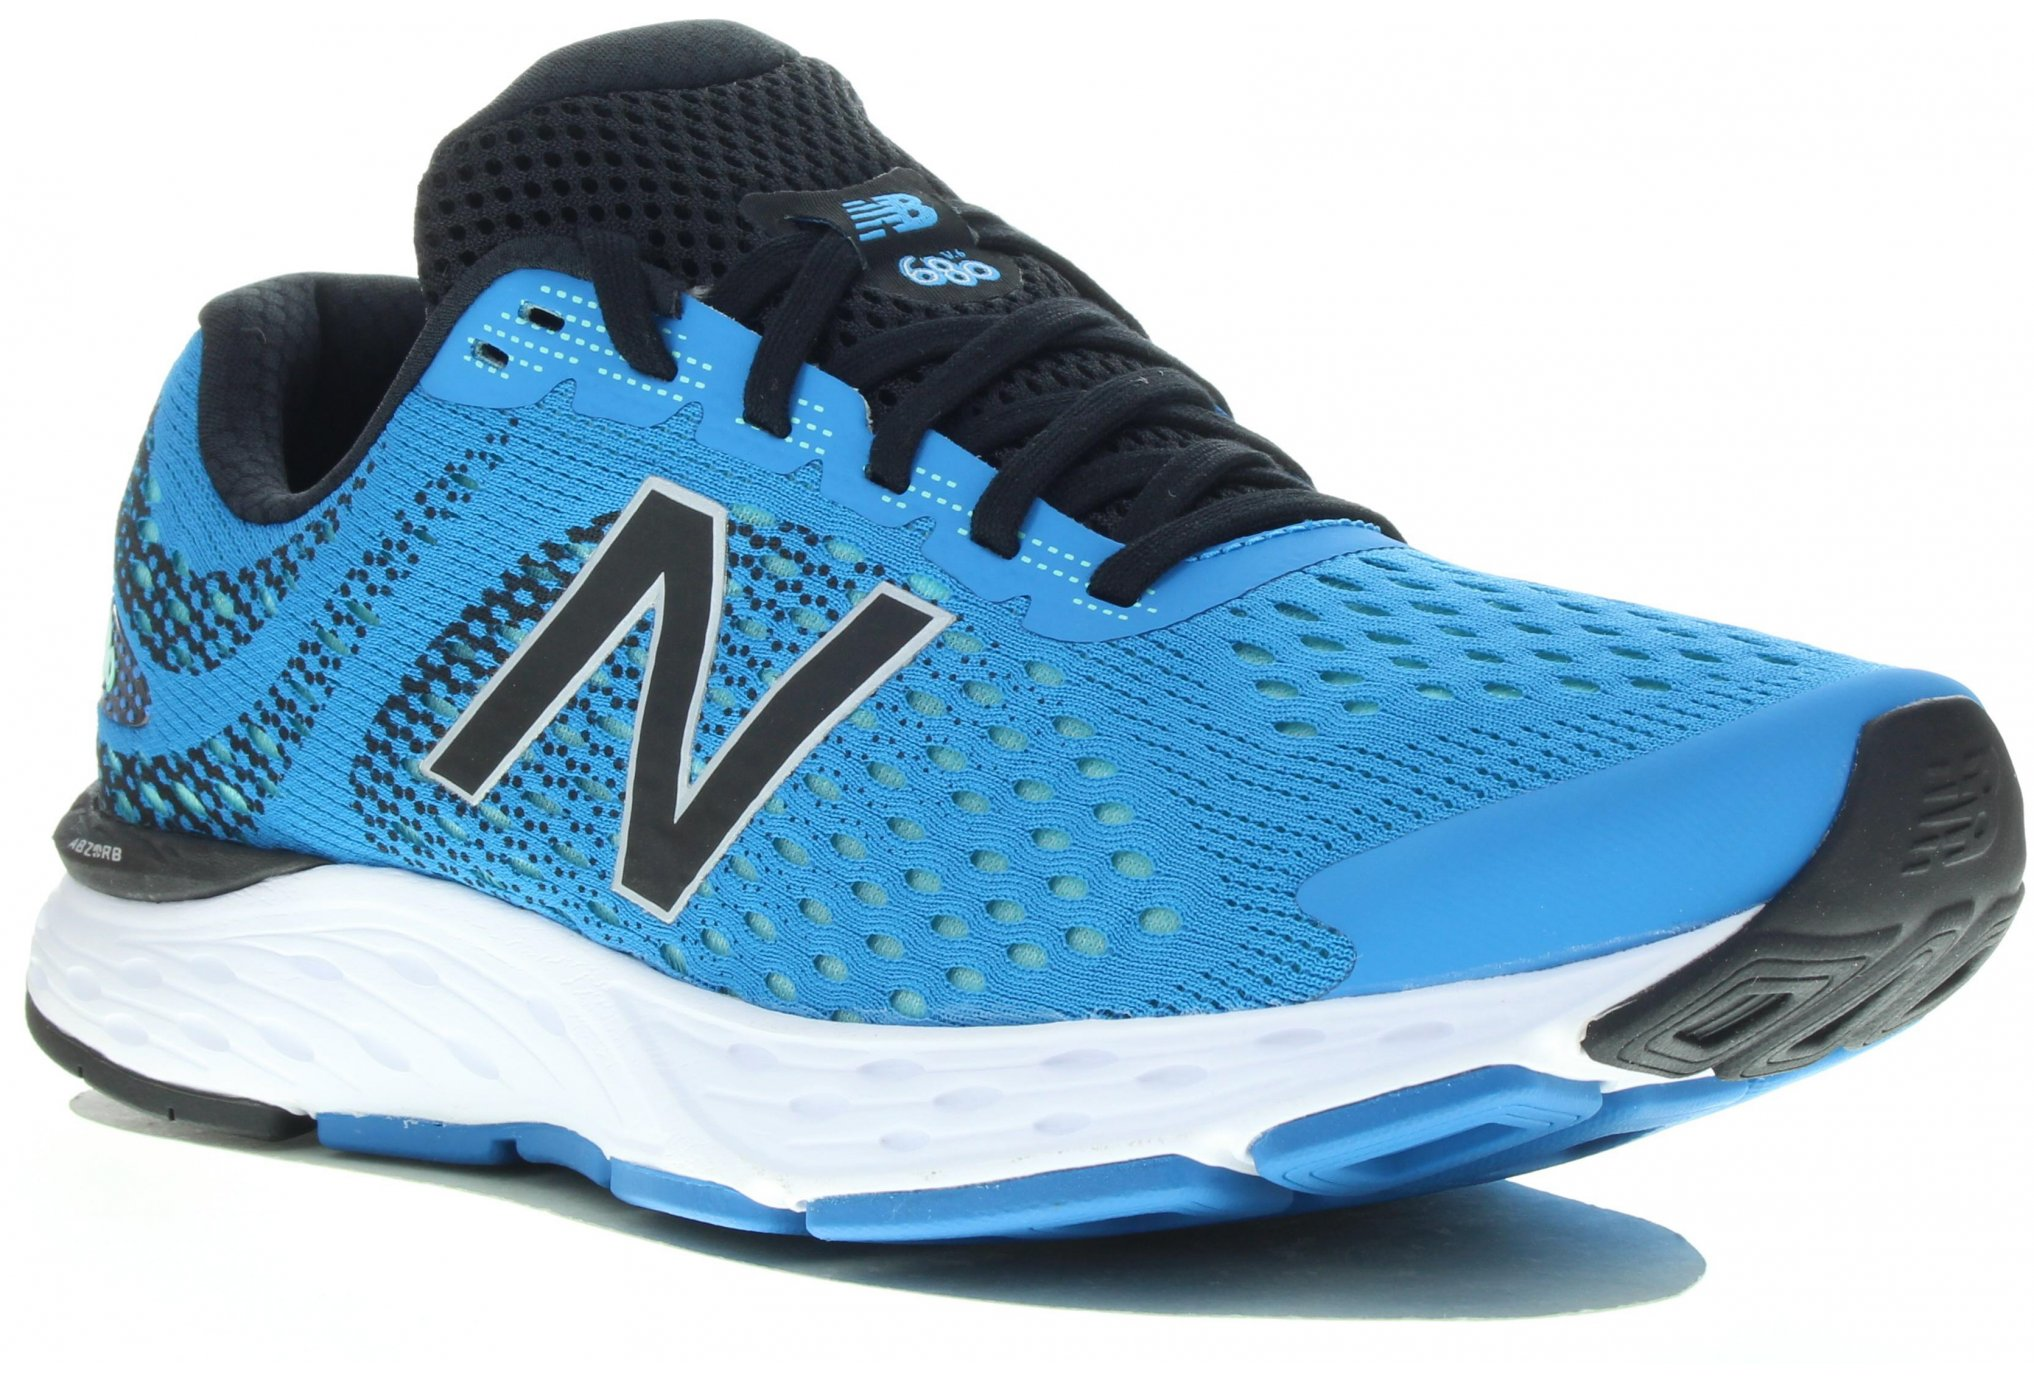 New Balance M 680 V6 - D Chaussures homme